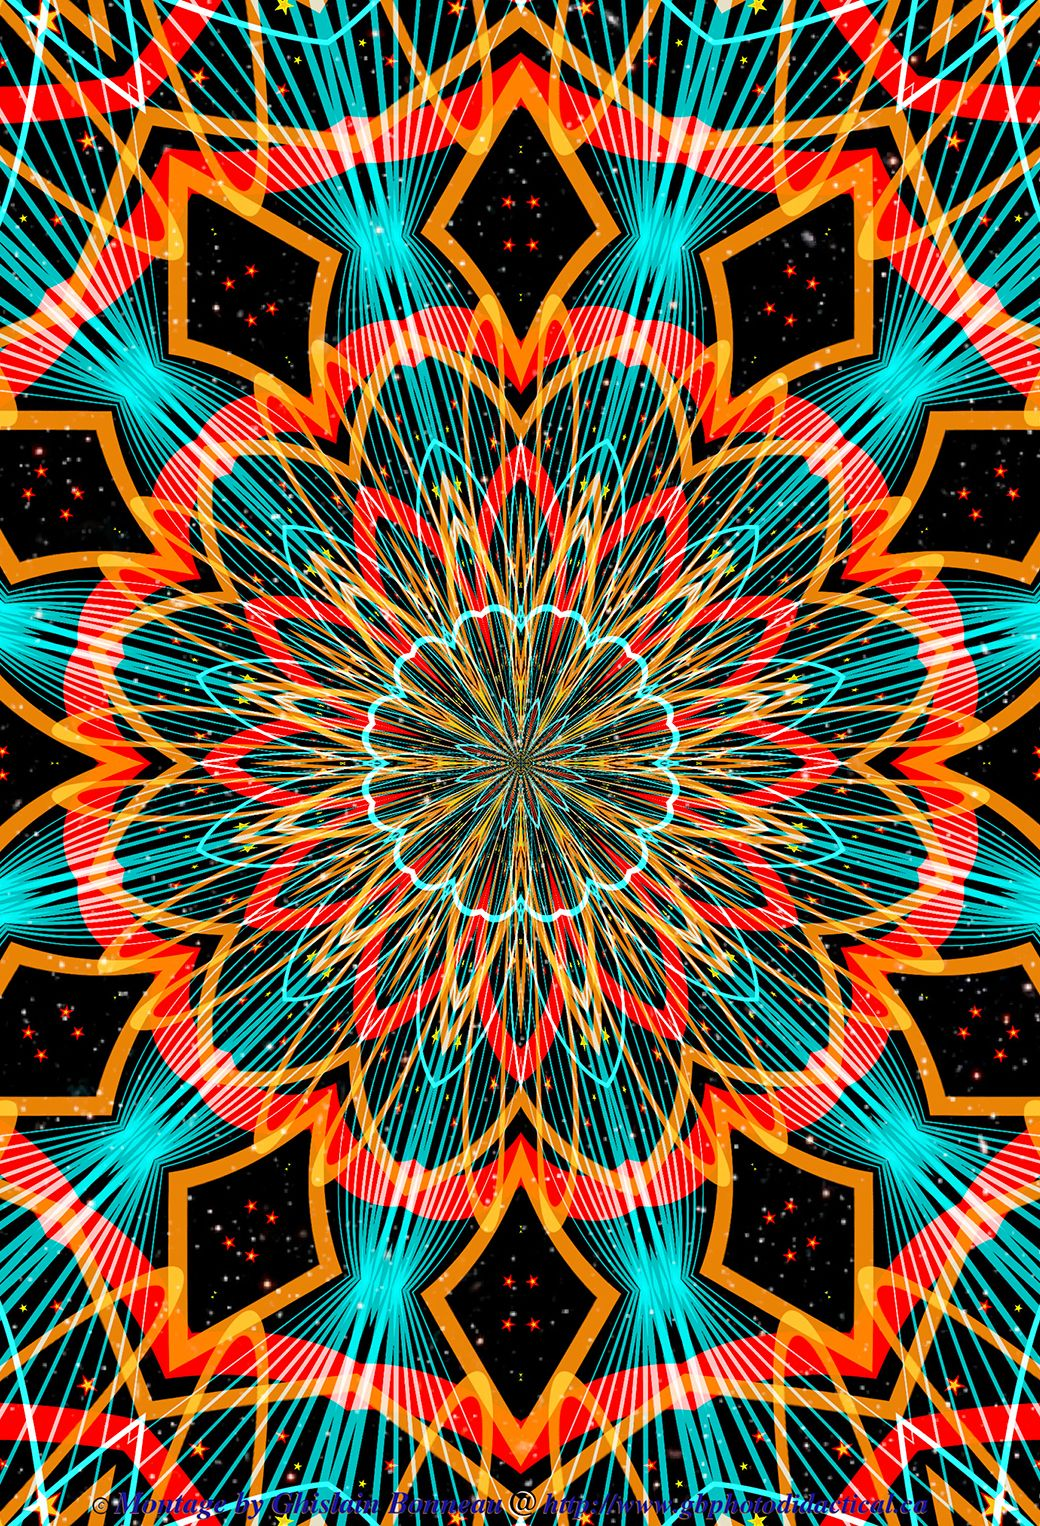 Psychedelic Trippy Backgrounds For Desktop, Android iPhone